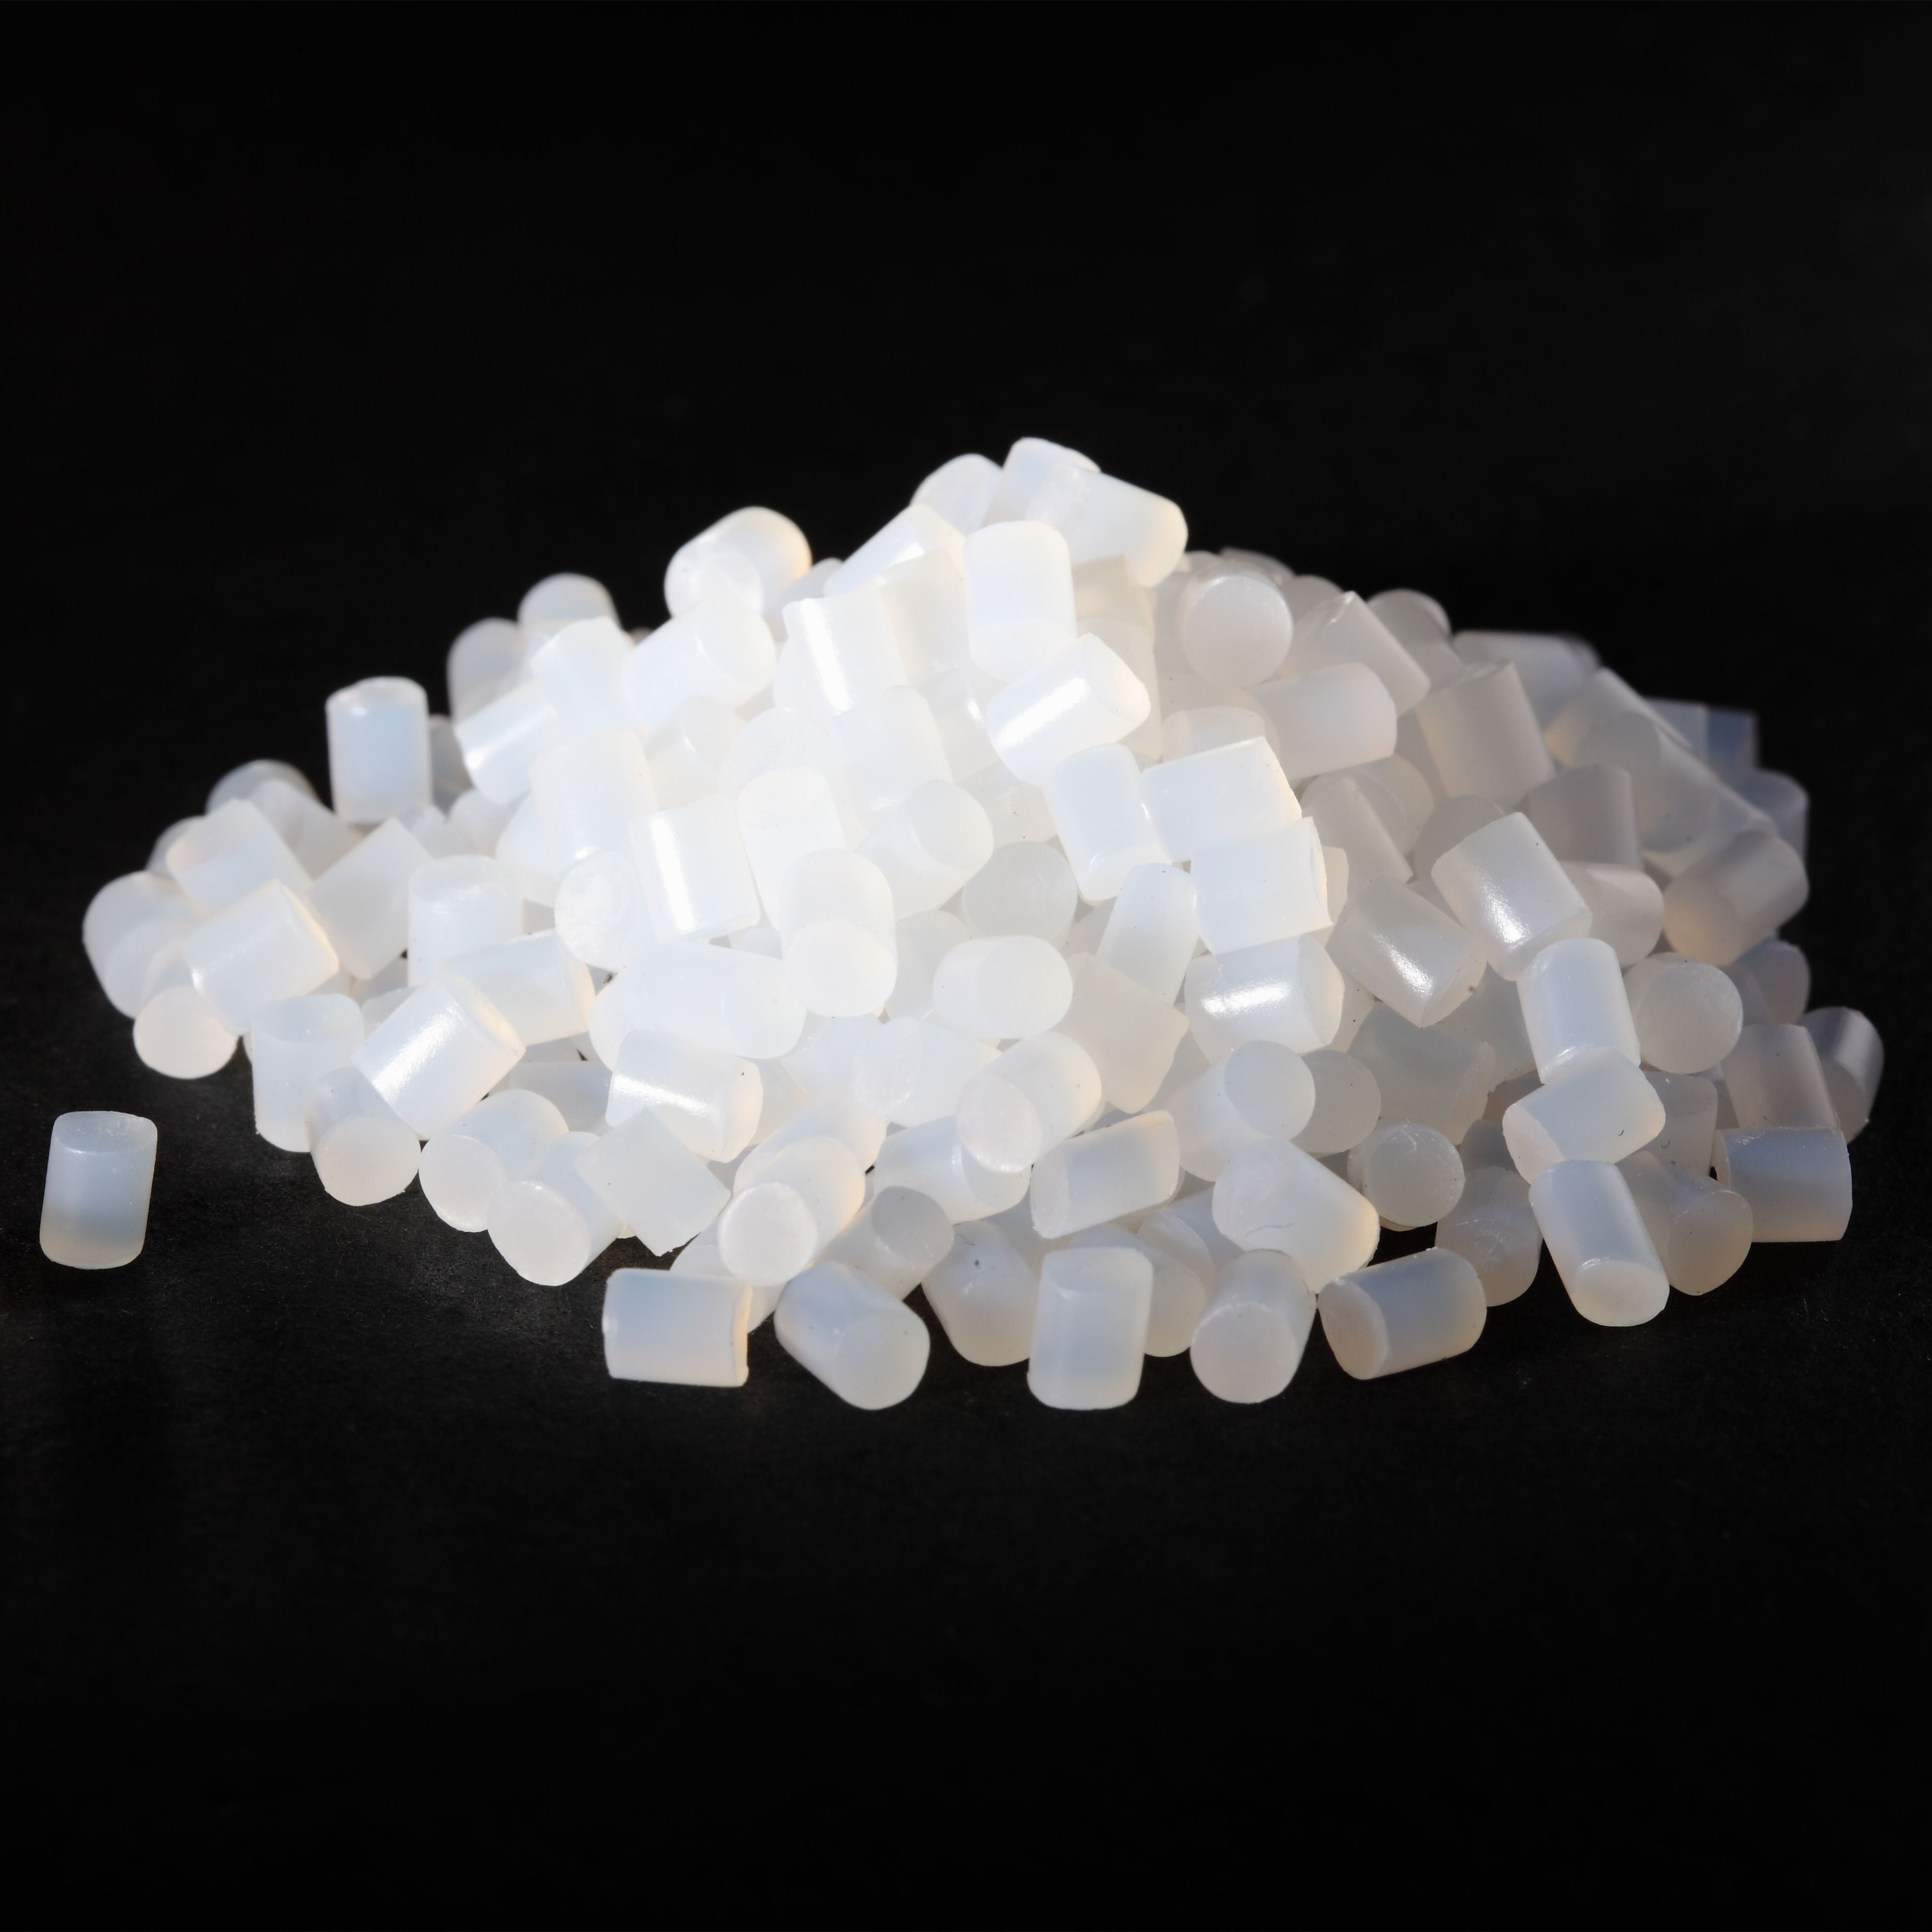 thermoplastic elastome tpe granulated thermoplastic polyurethane pellets thermoplastic raw material thermoplastic rubber sbs